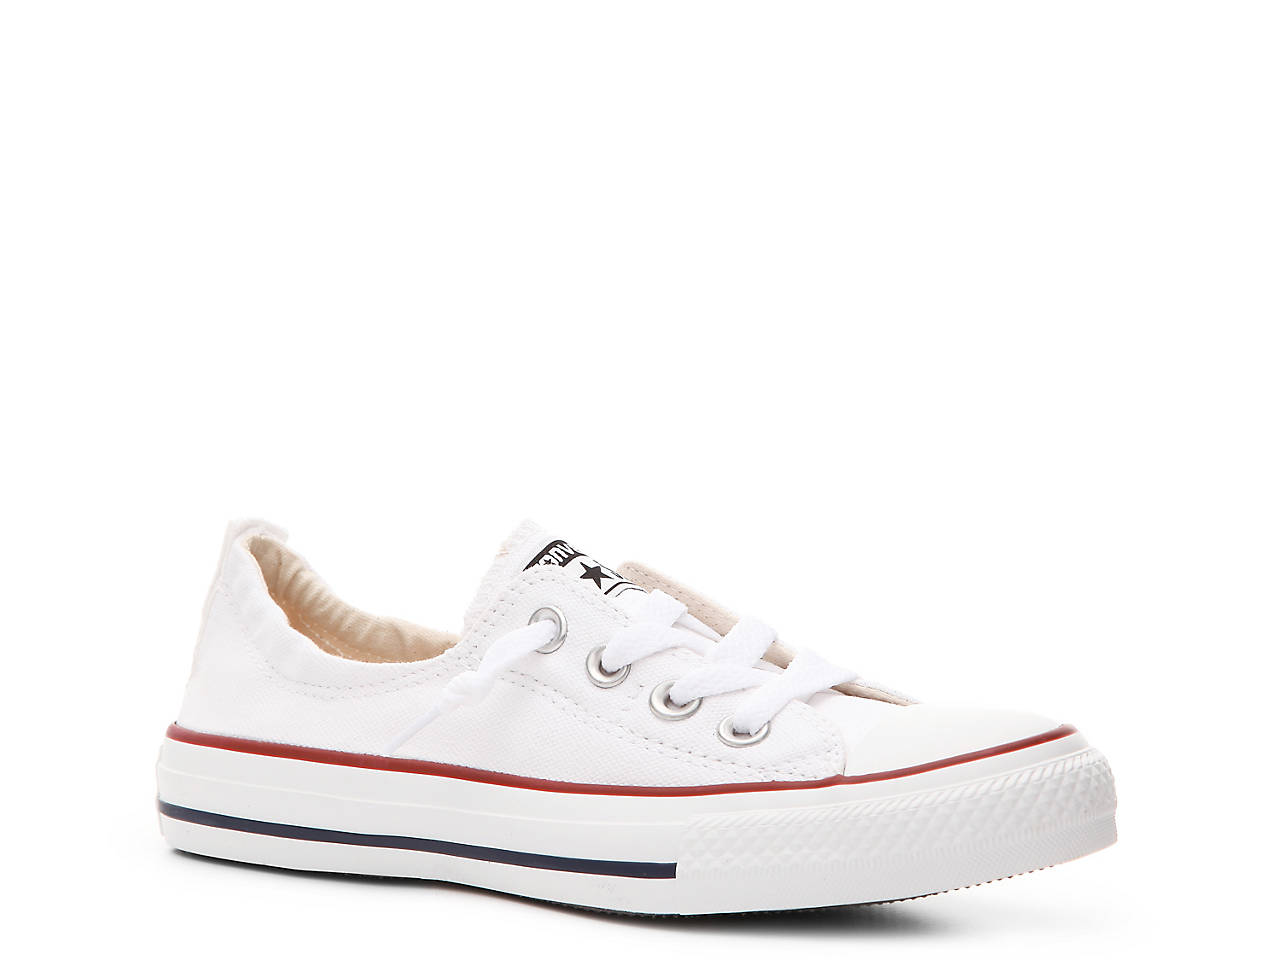 Converse Chuck Taylor All Star Shoreline Slip-On Sneaker - Women s ... 38c953df4